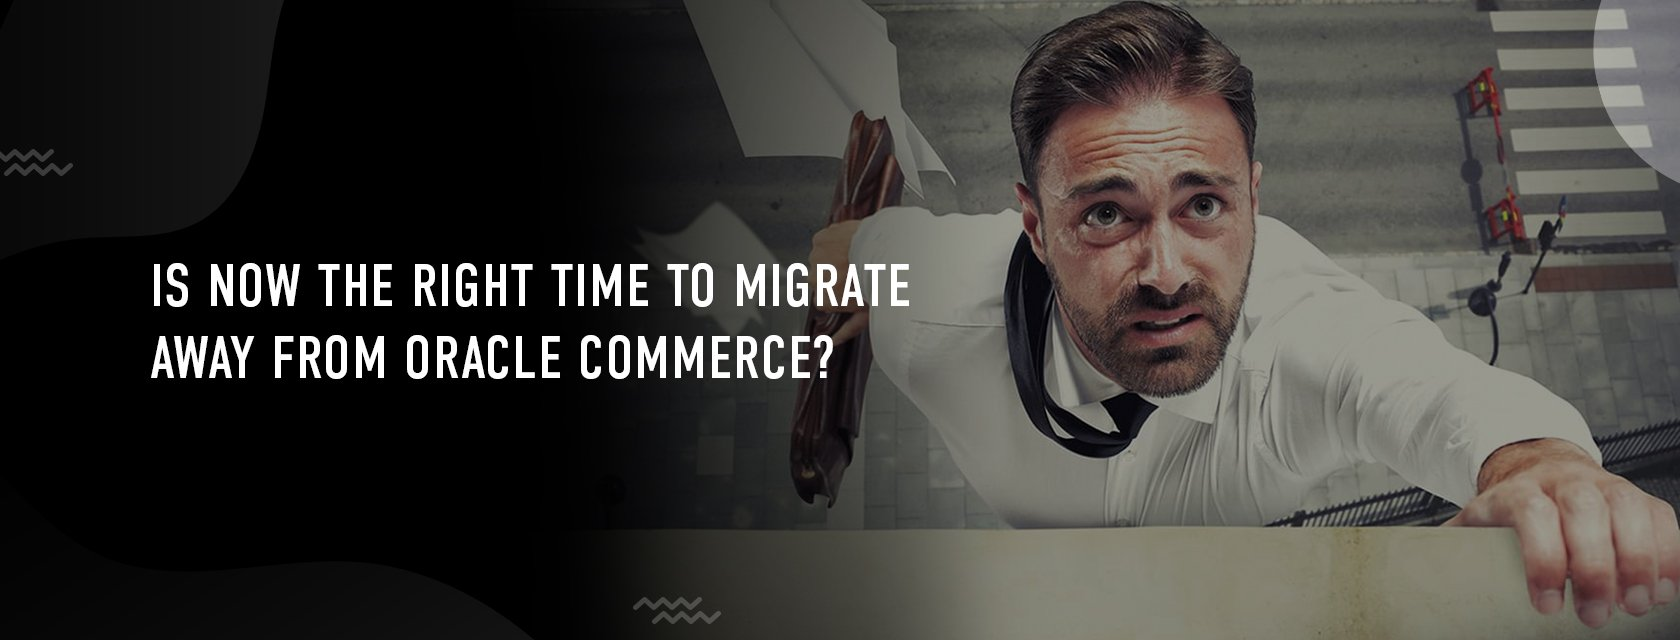 Is Now the Right Time to Migrate Away from Oracle Commerce?